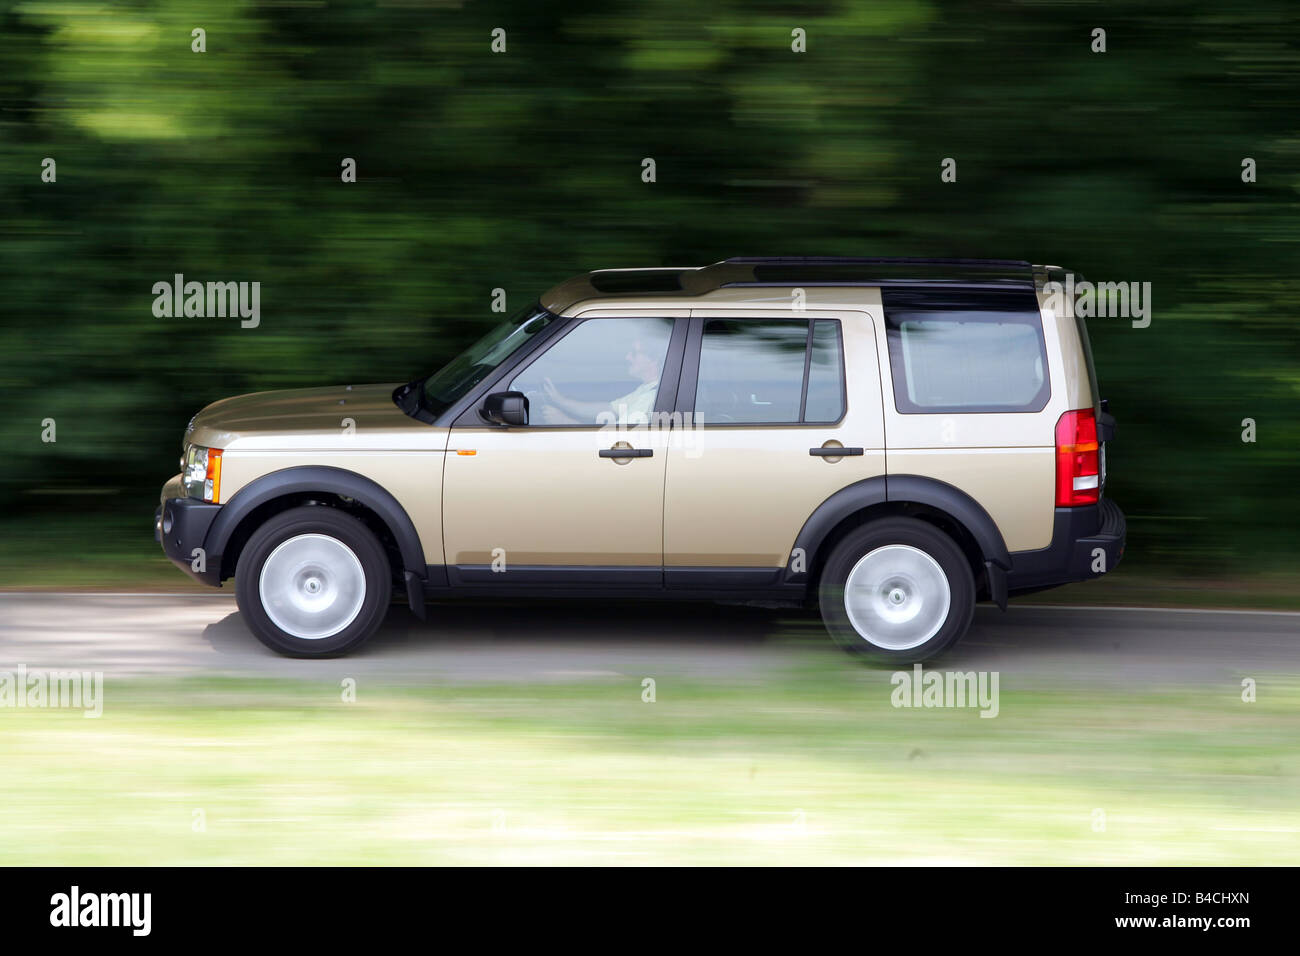 landrover discovery wallpaperup suv uk spec wallpaper land rover